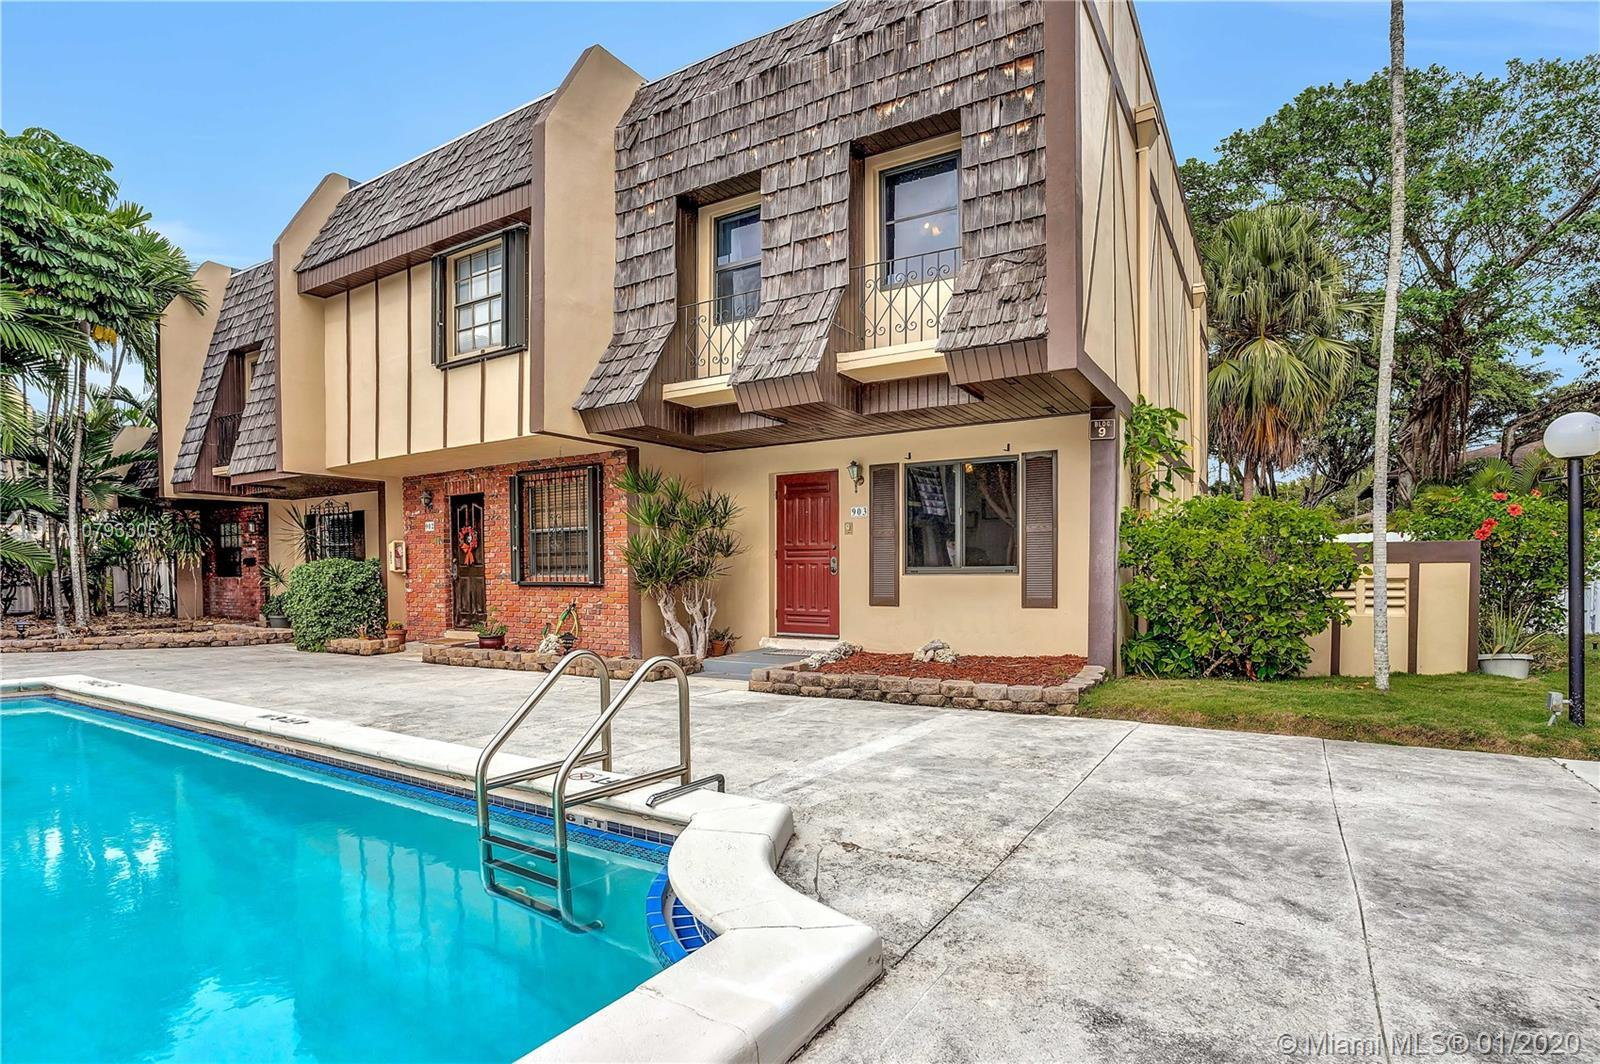 Poolside corner villa in South Miami with new open kitchen layout & stainless steel appliances. This